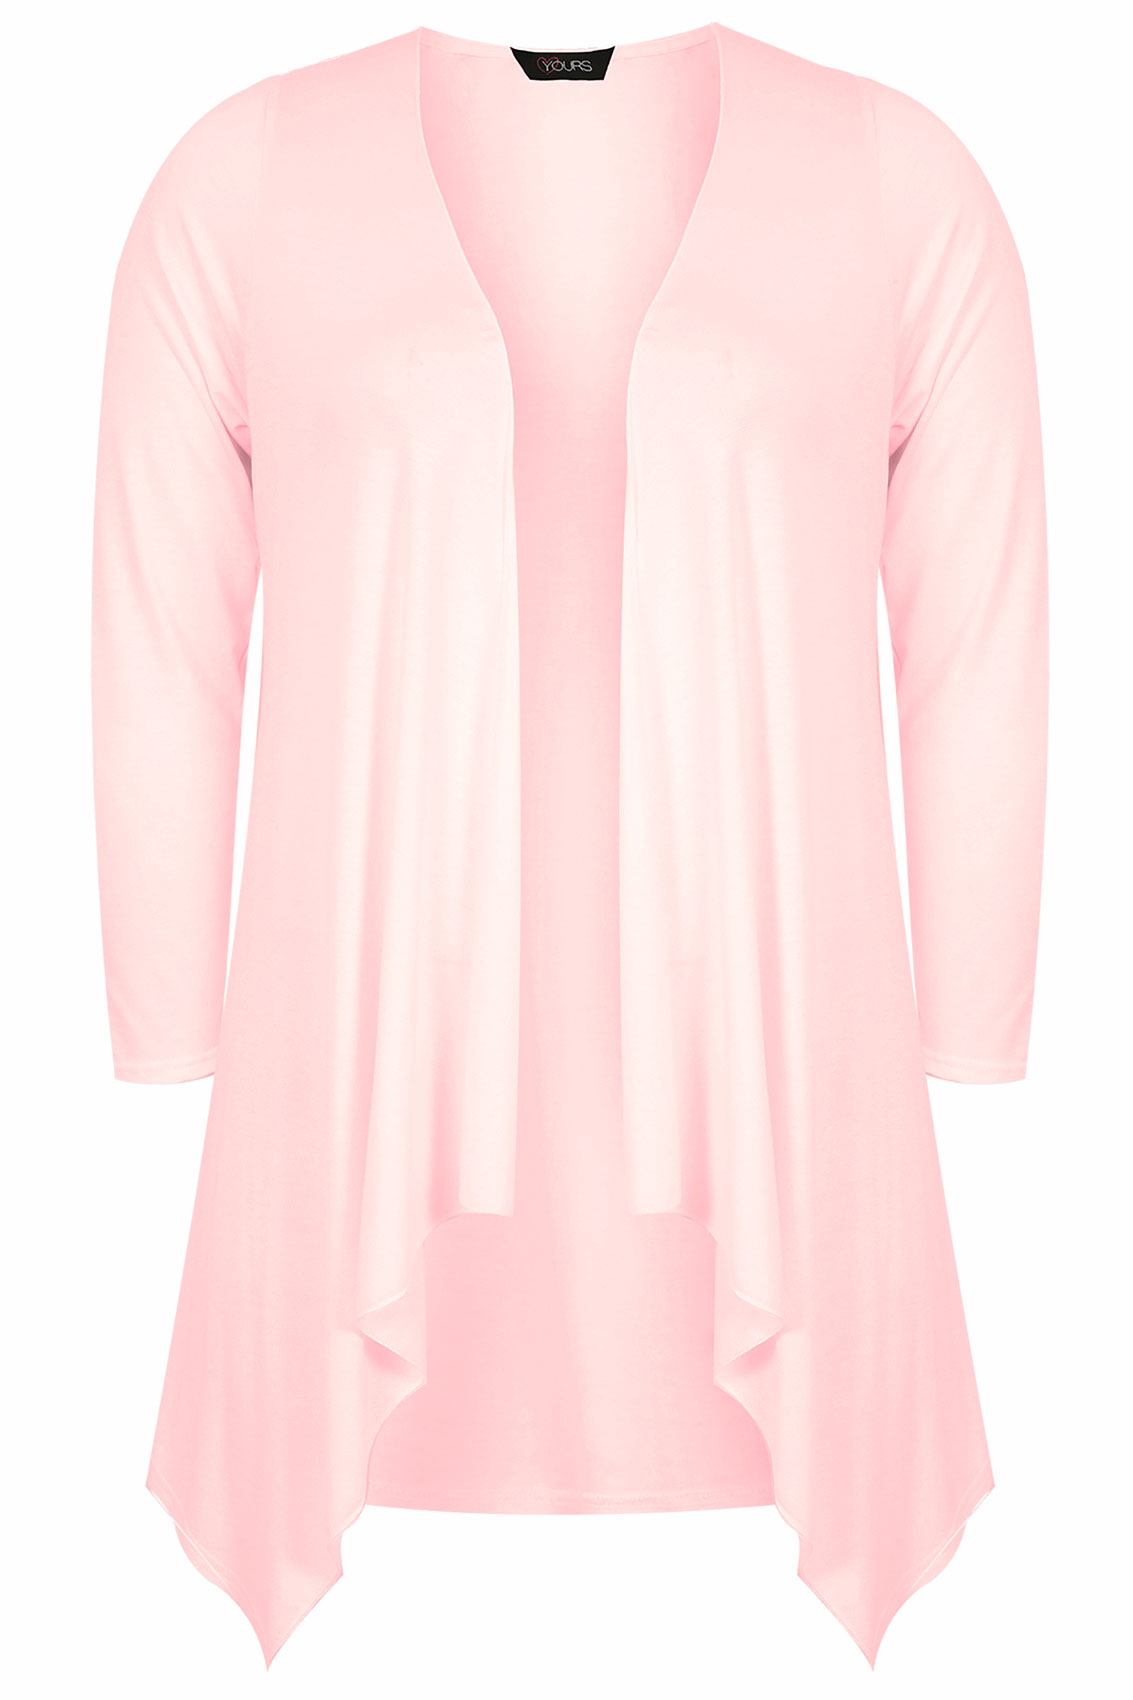 Pale Pink Edge To Edge Waterfall Jersey Cardigan plus Size 16 to 32